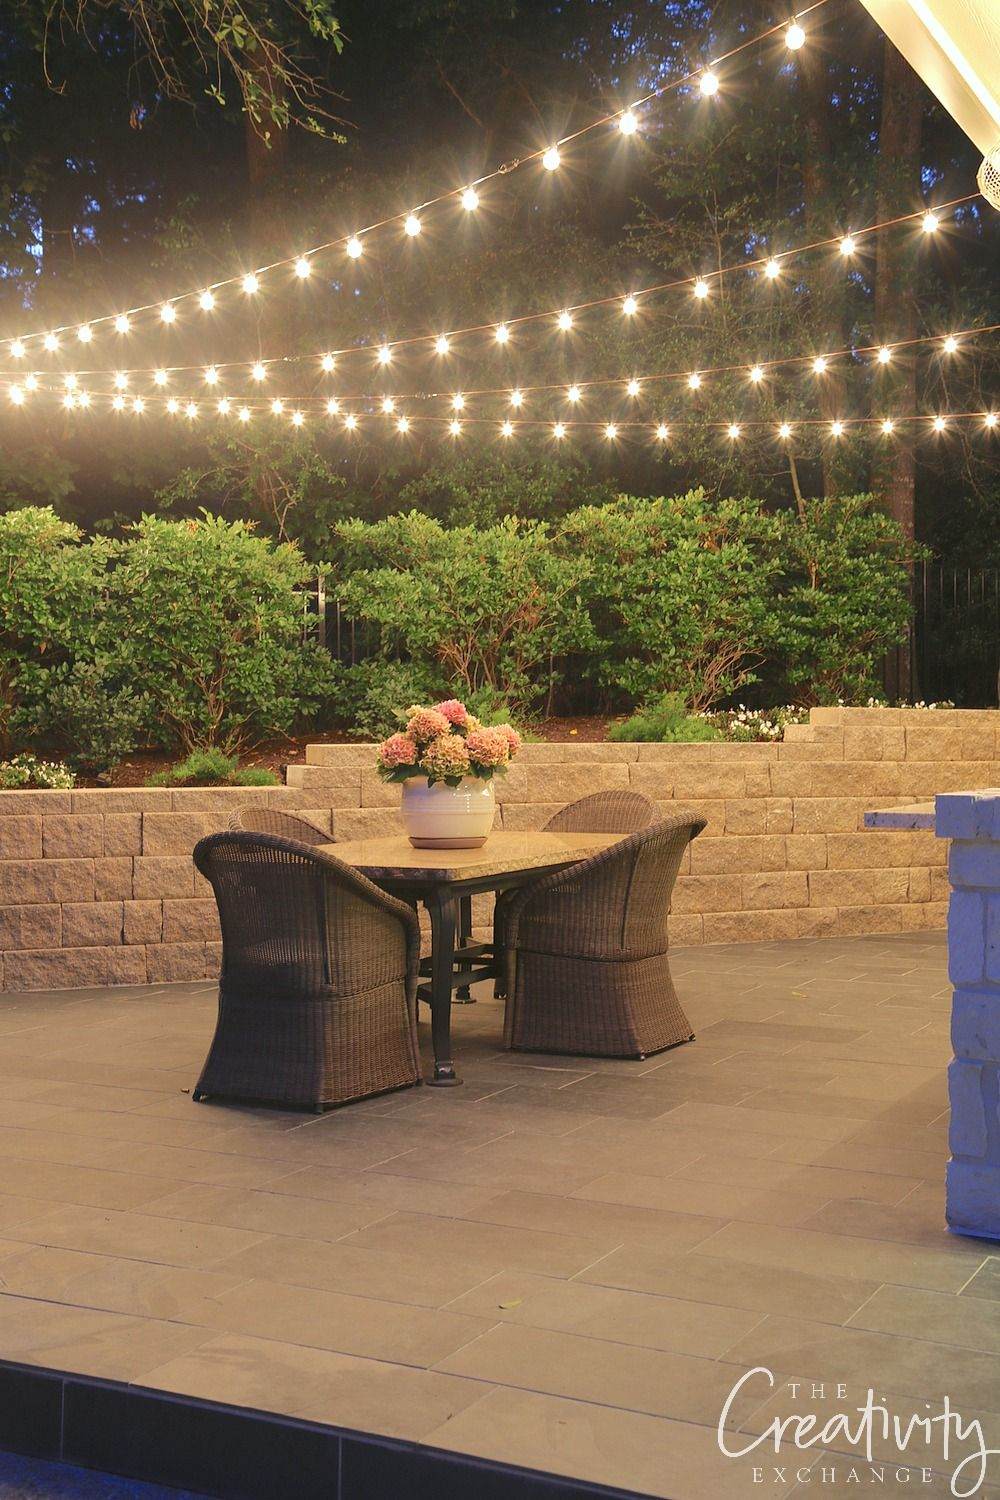 ideas for hanging string lights outdoors on pin on curb appeal outdoor living are everything pin on curb appeal outdoor living are